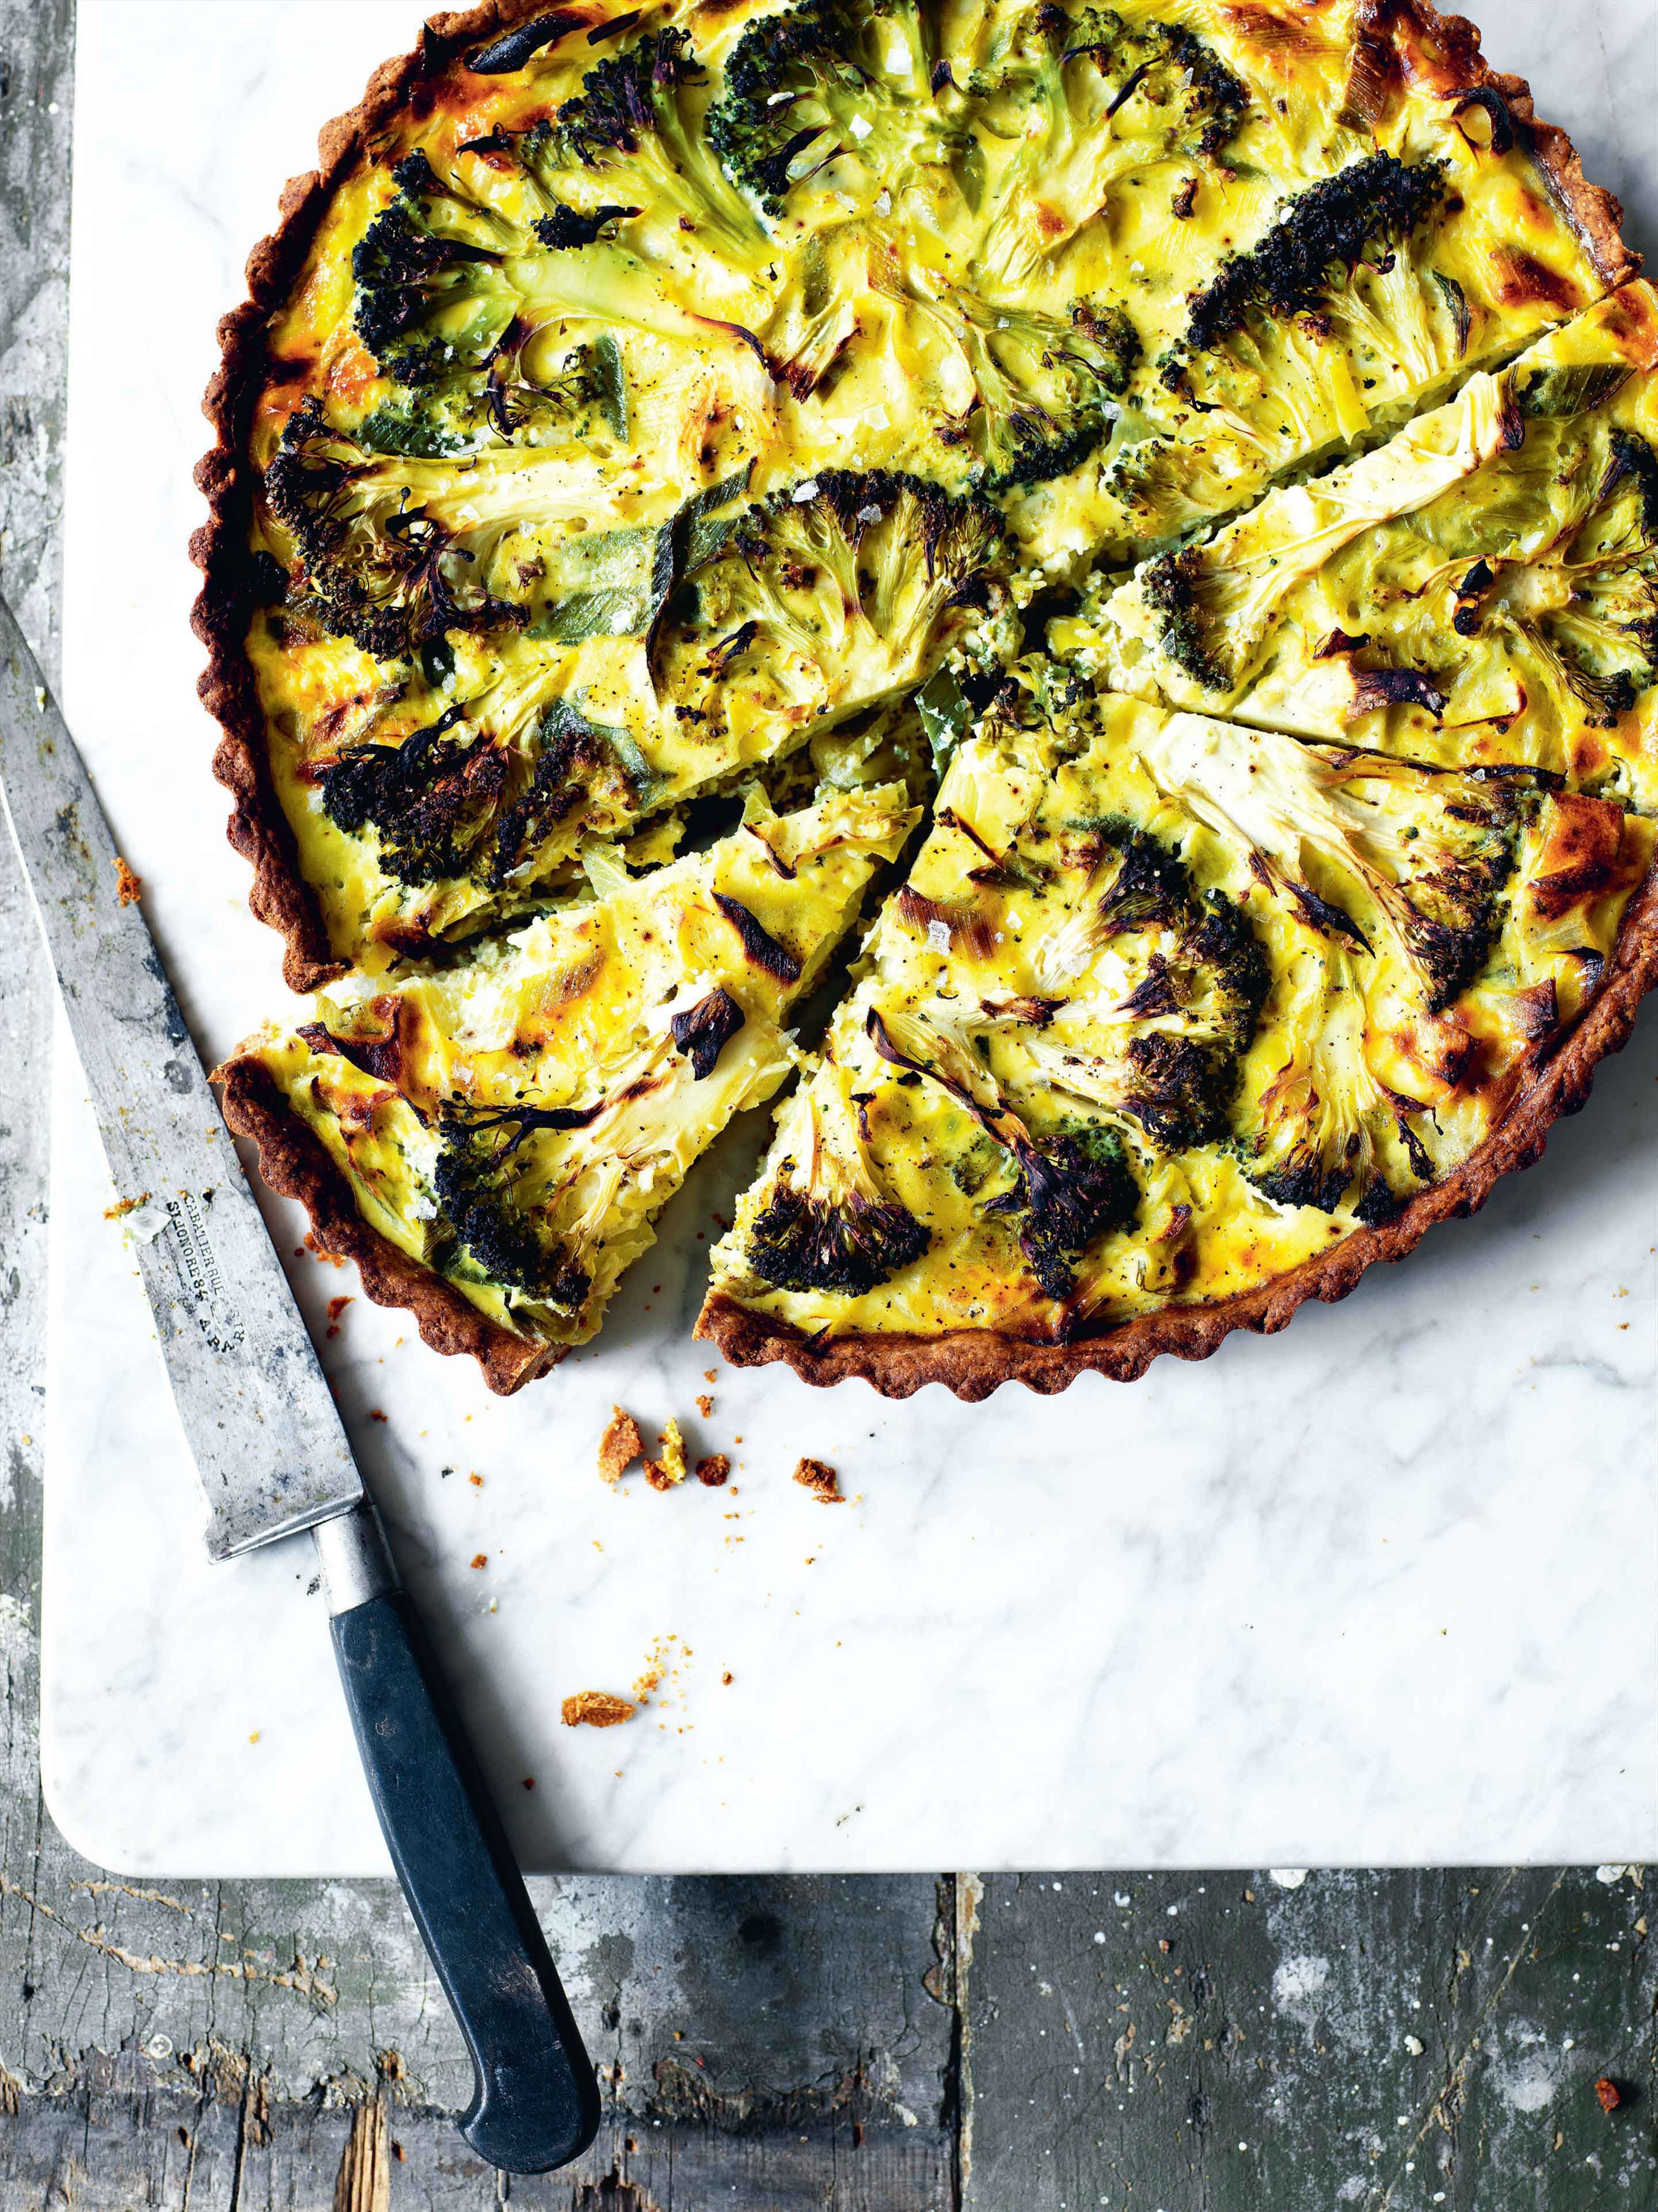 Rye crust tart with broccoli and leeks